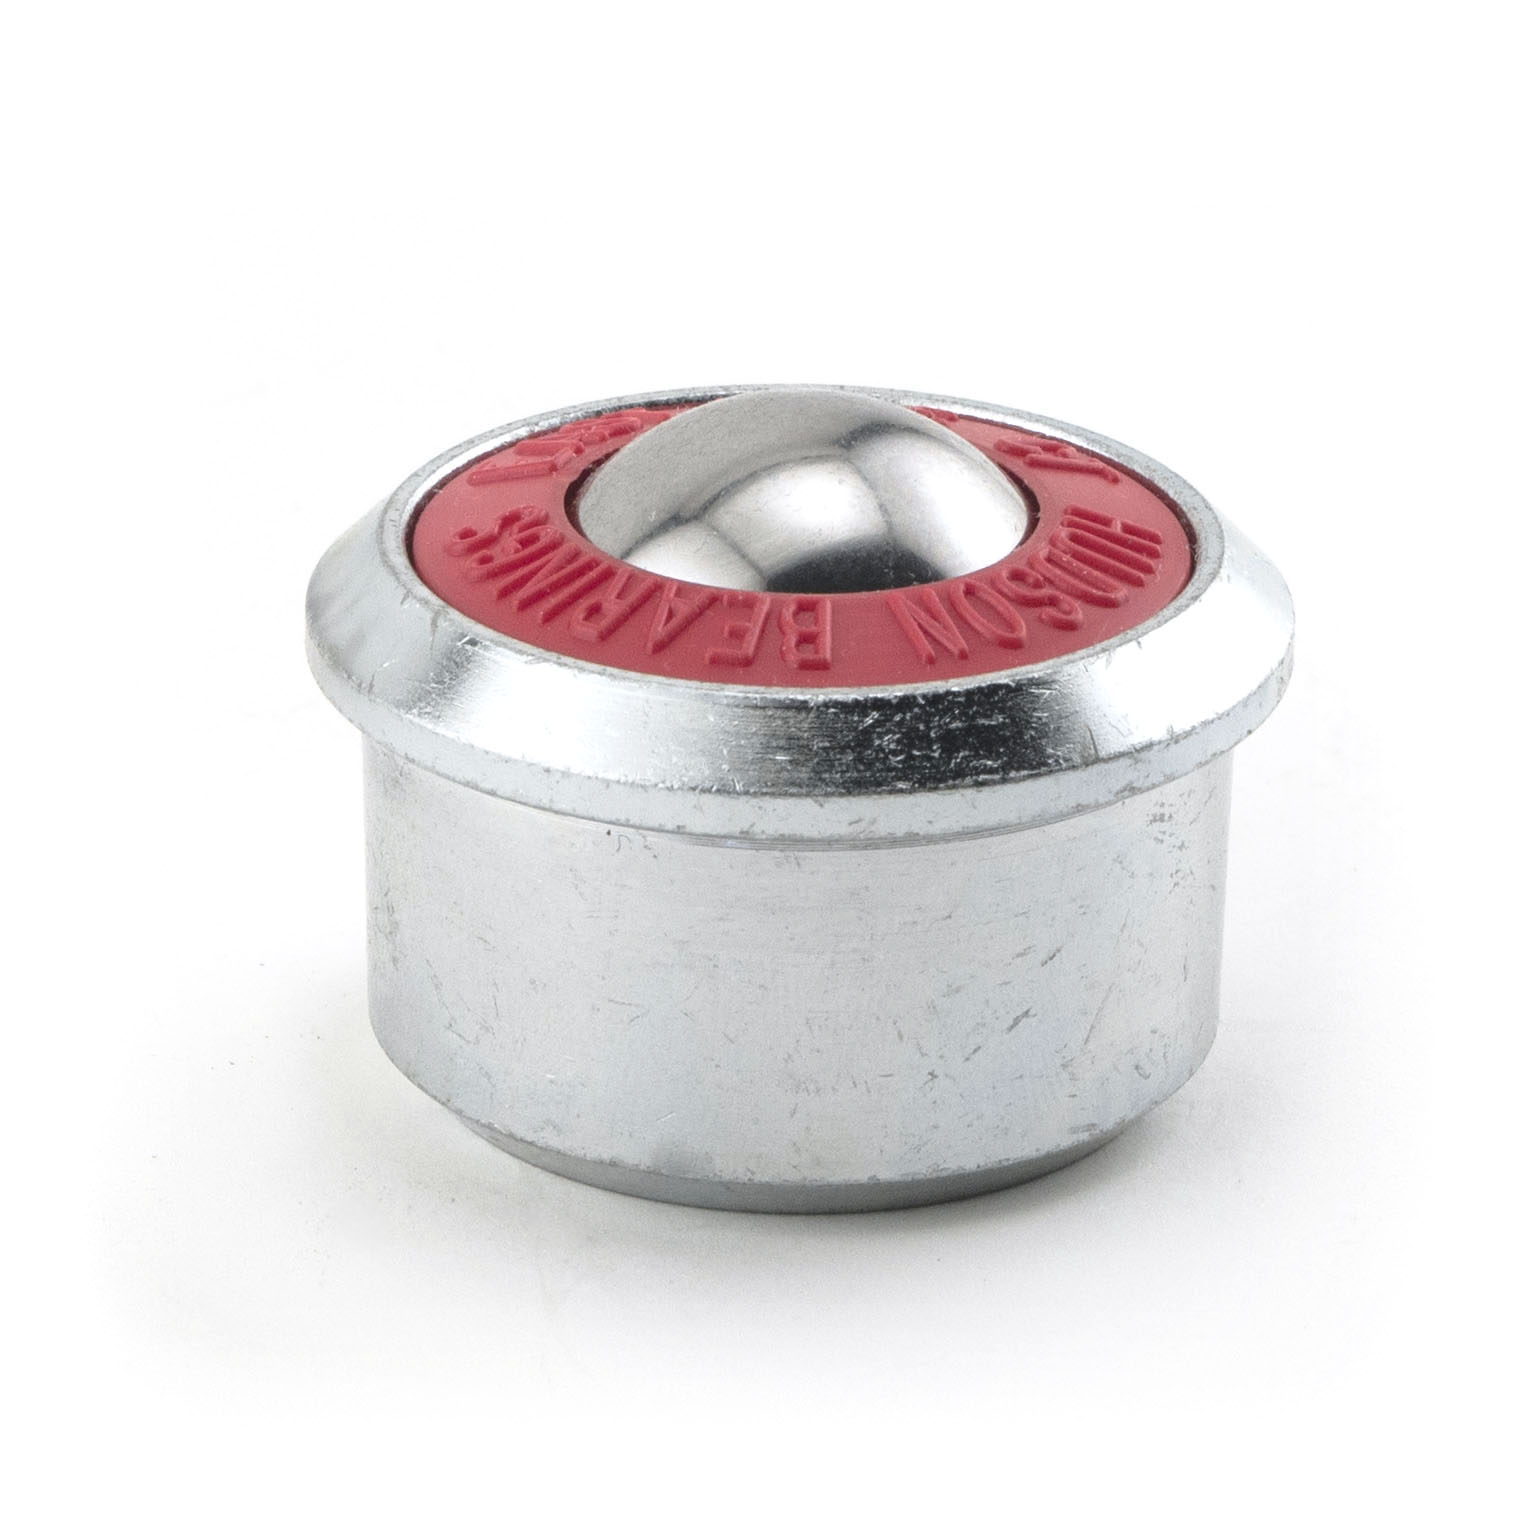 Heavy duty machined ball transfer with steel housing and main ball and red retainer ring.